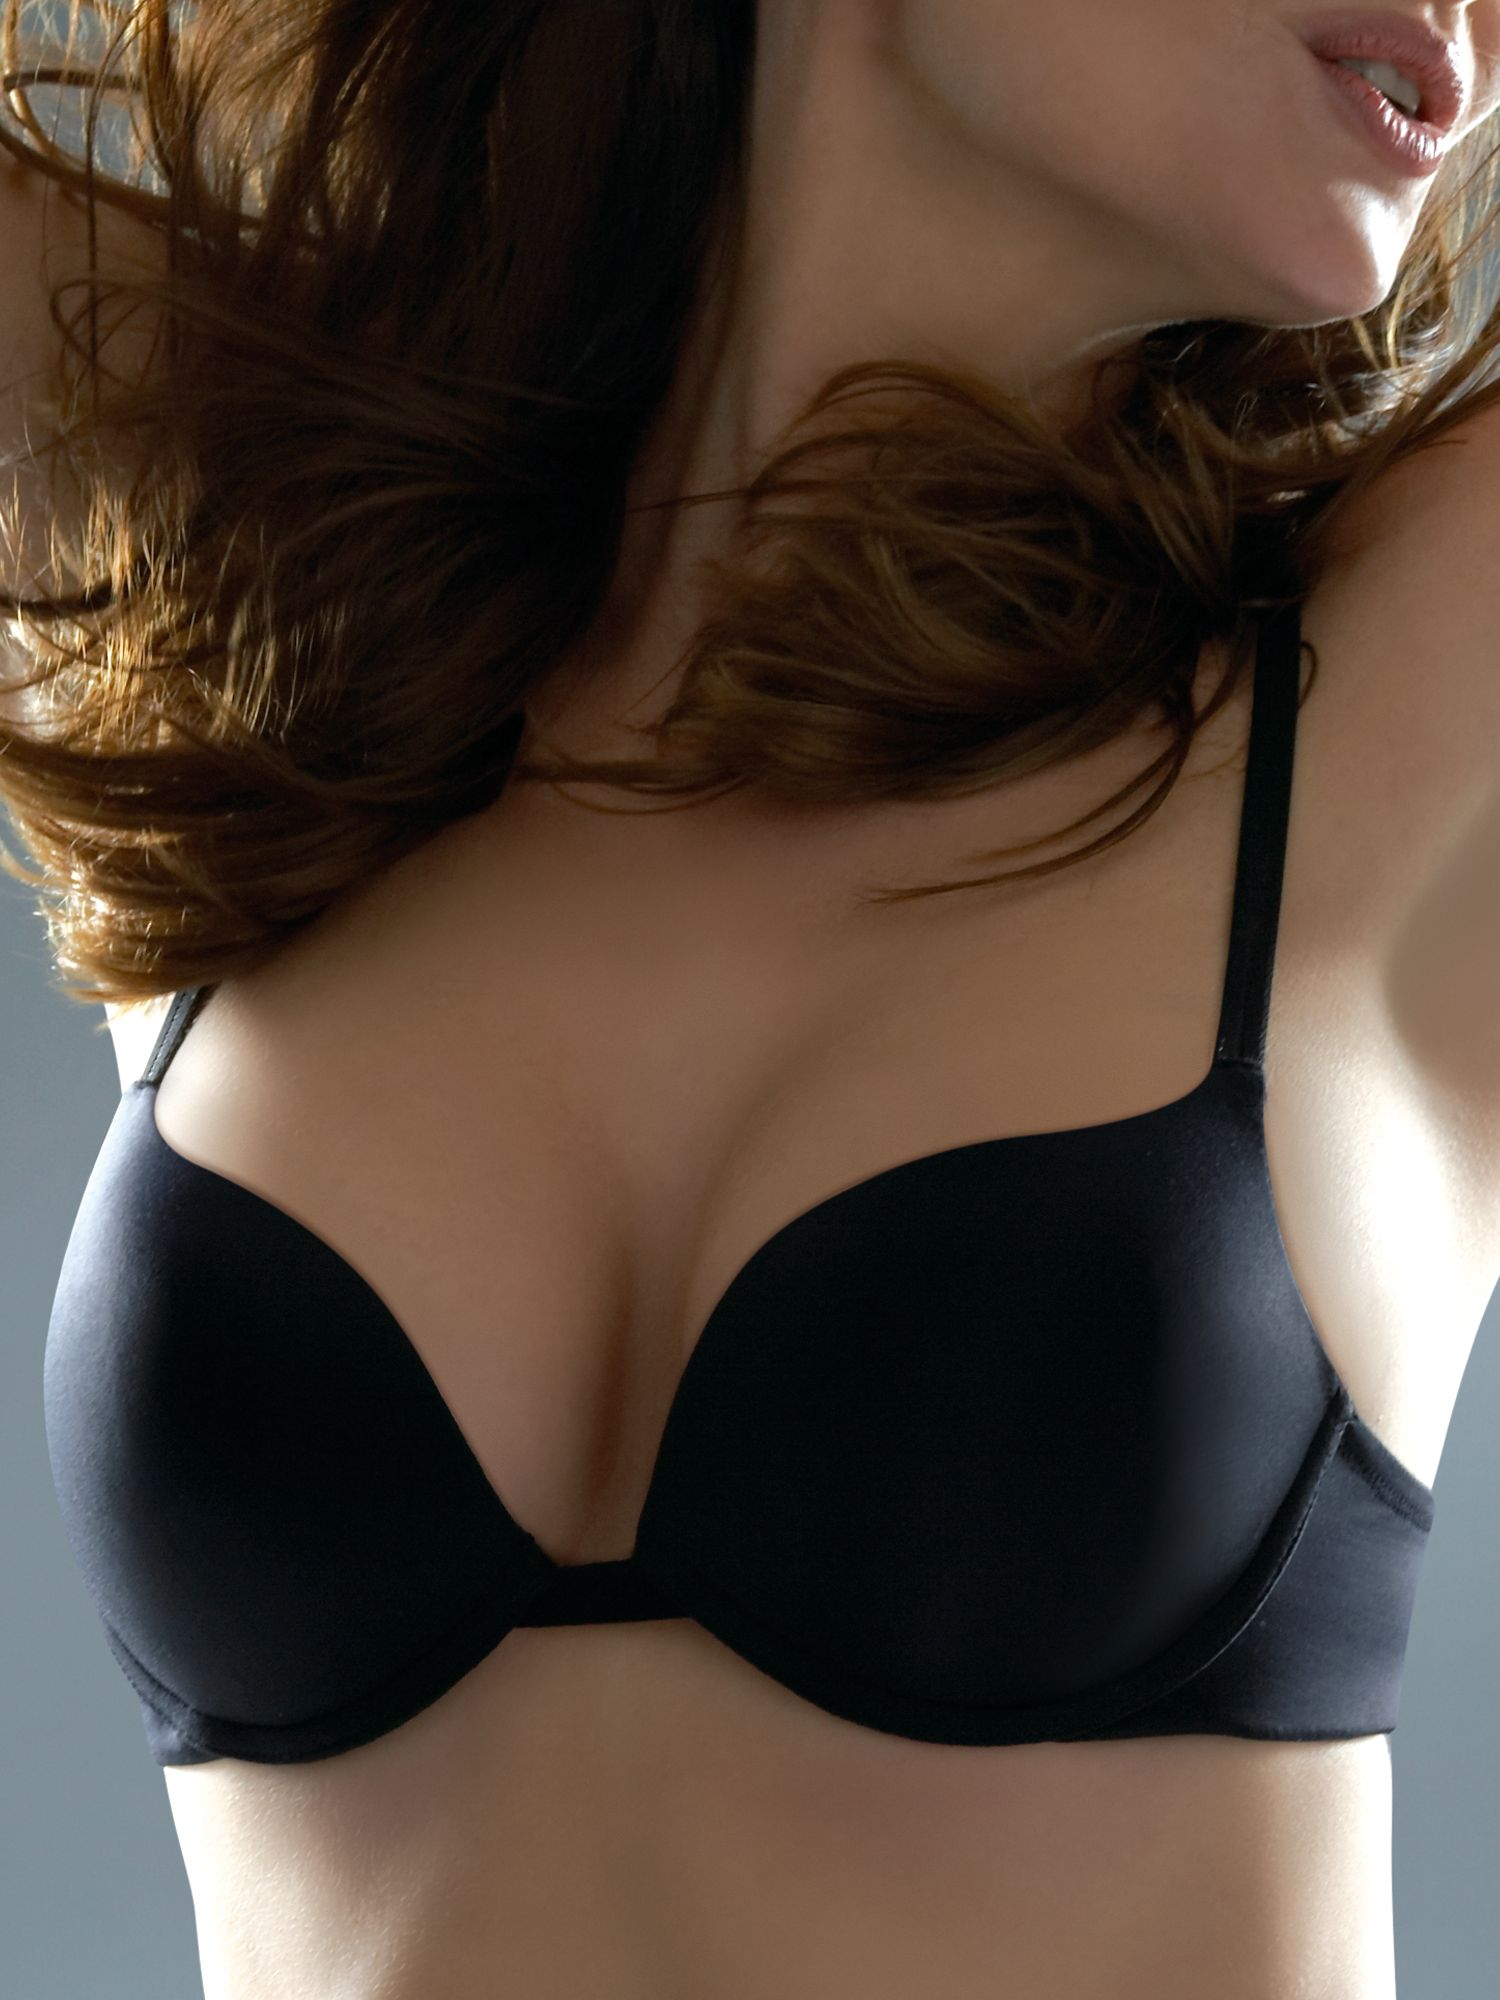 Gel push up bra